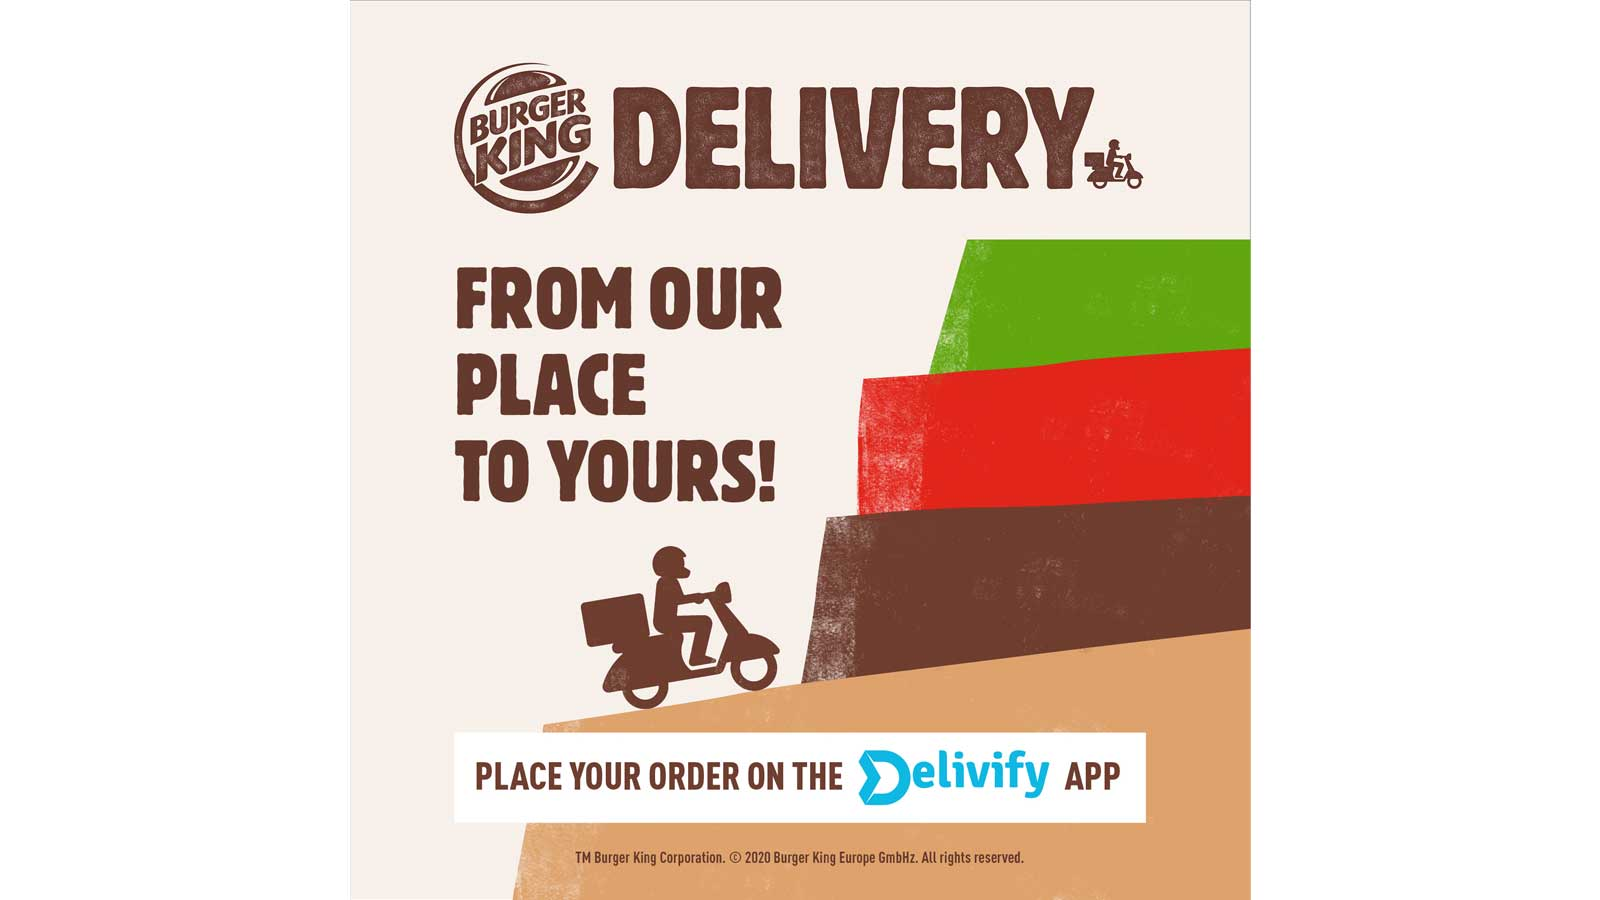 Burger King launches delivery service in Malta